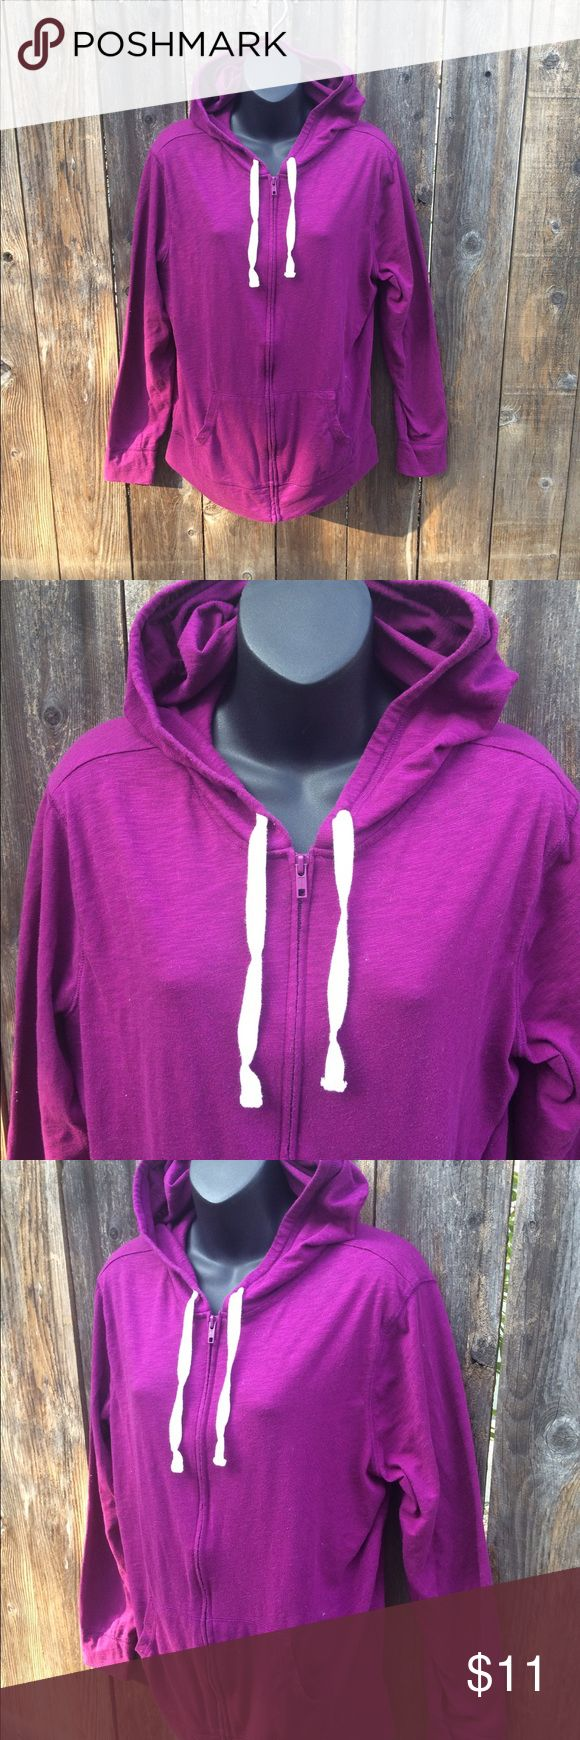 Gap jewel toned purple zip up hoodie Purchased from another seller who said they only wore it once. I have only washed it. Picture made it look Burgundy and it's a bright pretty purple. I unfortunately am boring and wear more muted colors. Haha. Zip up with hood. Tag has been cut out. The brand is Gap, size large.  Any discoloration at bottom is from the lighting. It is not flawed. GAP Tops Sweatshirts & Hoodies